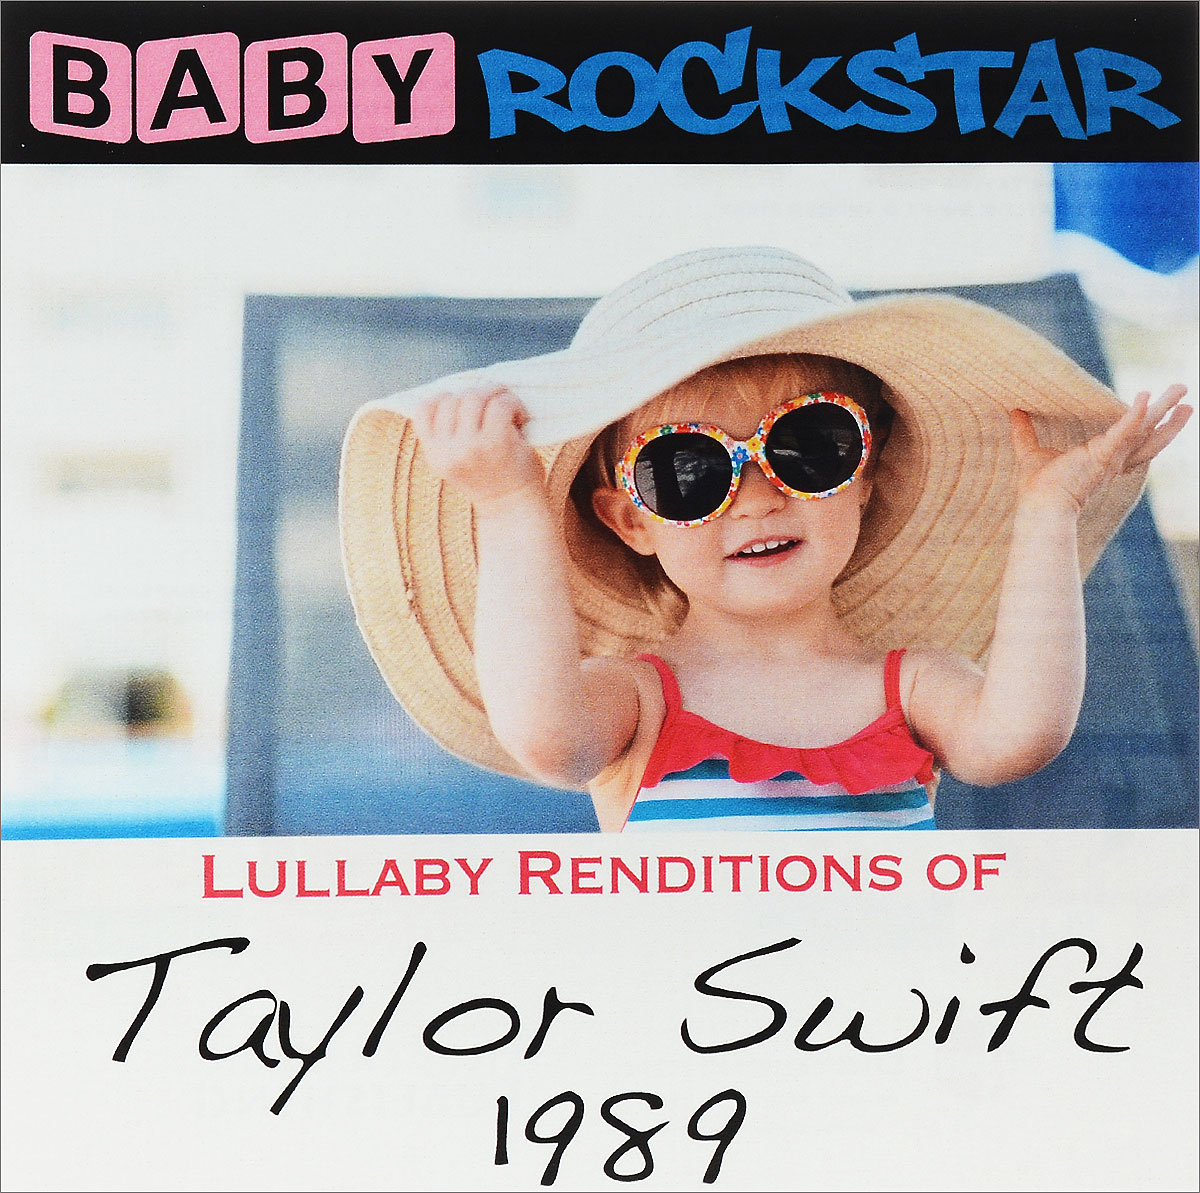 Baby Rockstar Baby Rockstar. Lullaby Renditions Of Taylor Swift - 1989 чарли браун baby rockstar lullaby renditions of a charlie brown christmas